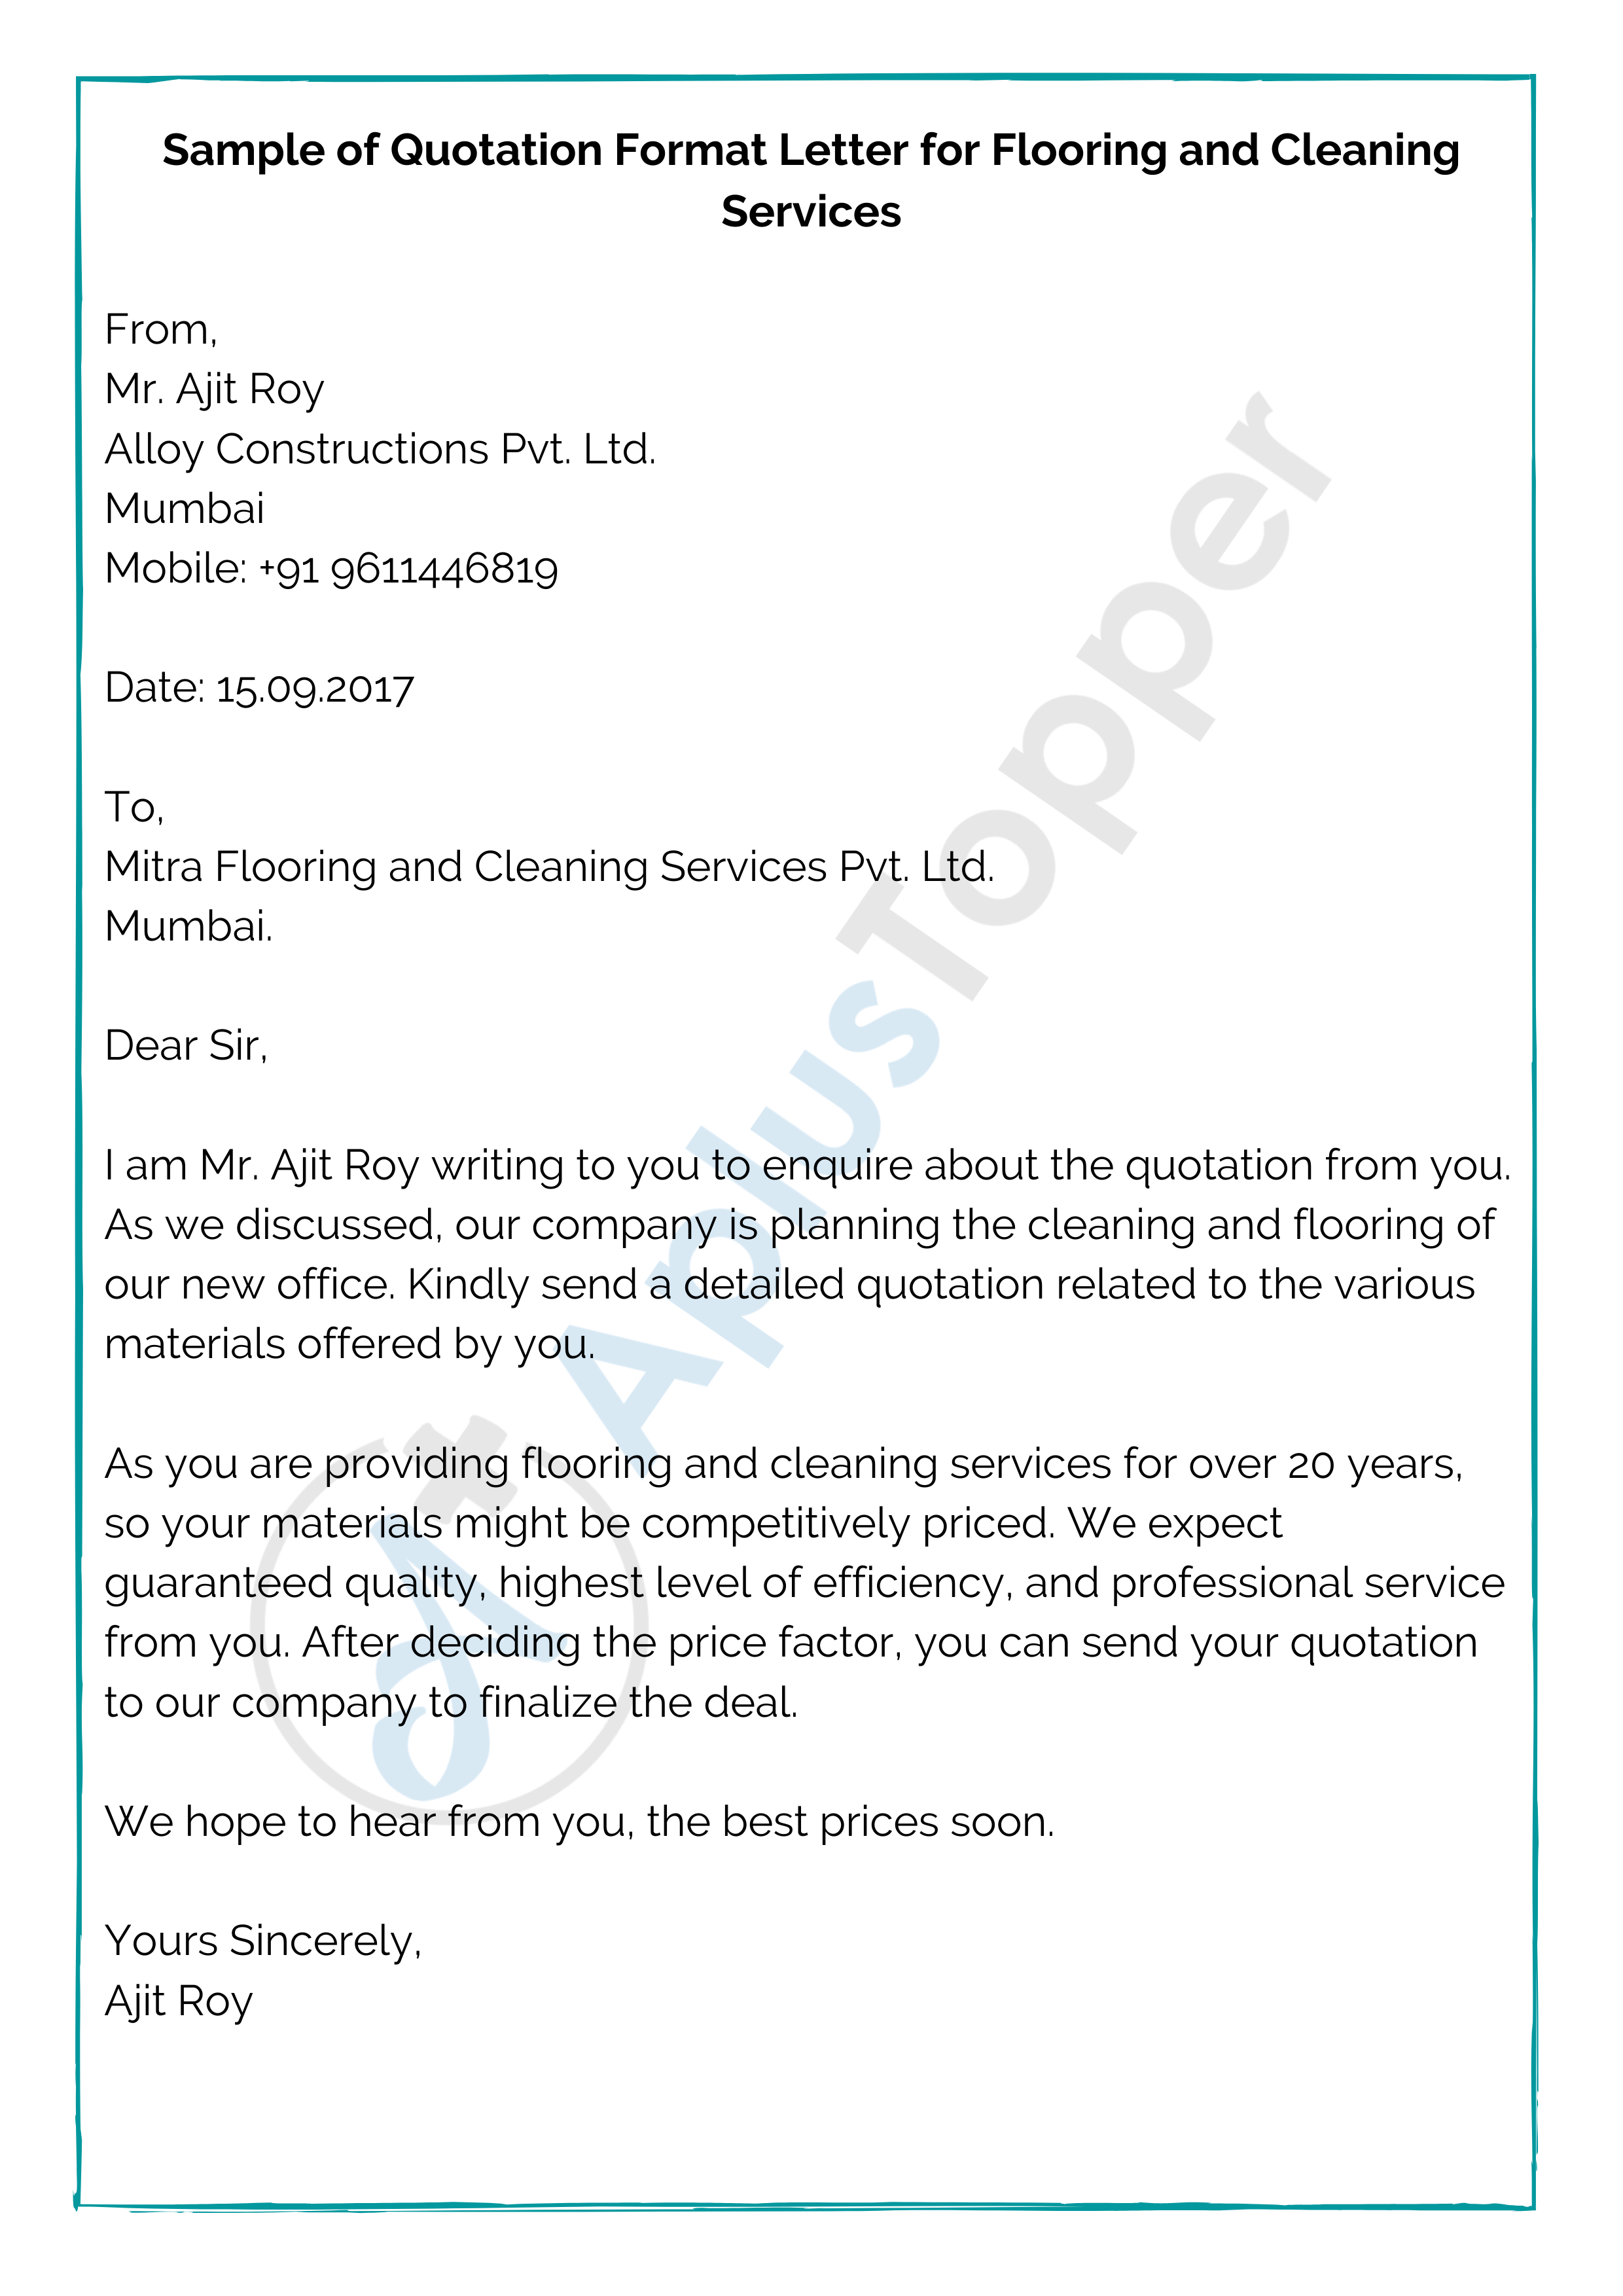 Sample of Quotation Format Letter for Flooring and Cleaning Services